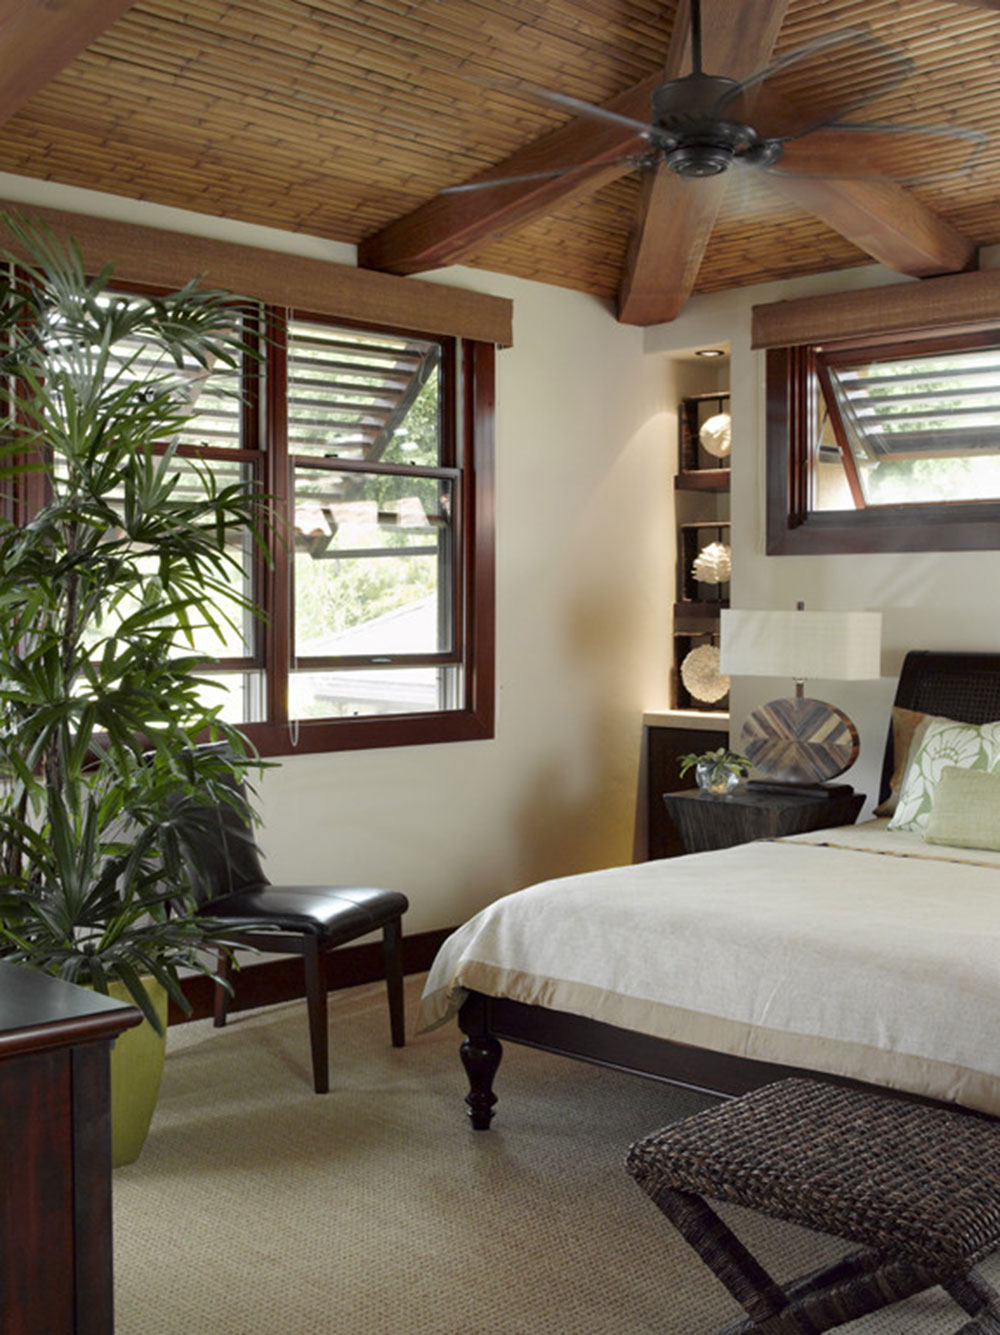 Applegate-Tran-Interiors-by-Applegate-Tran-Interiors What are Bahamian shutters and what are their advantages and disadvantages?